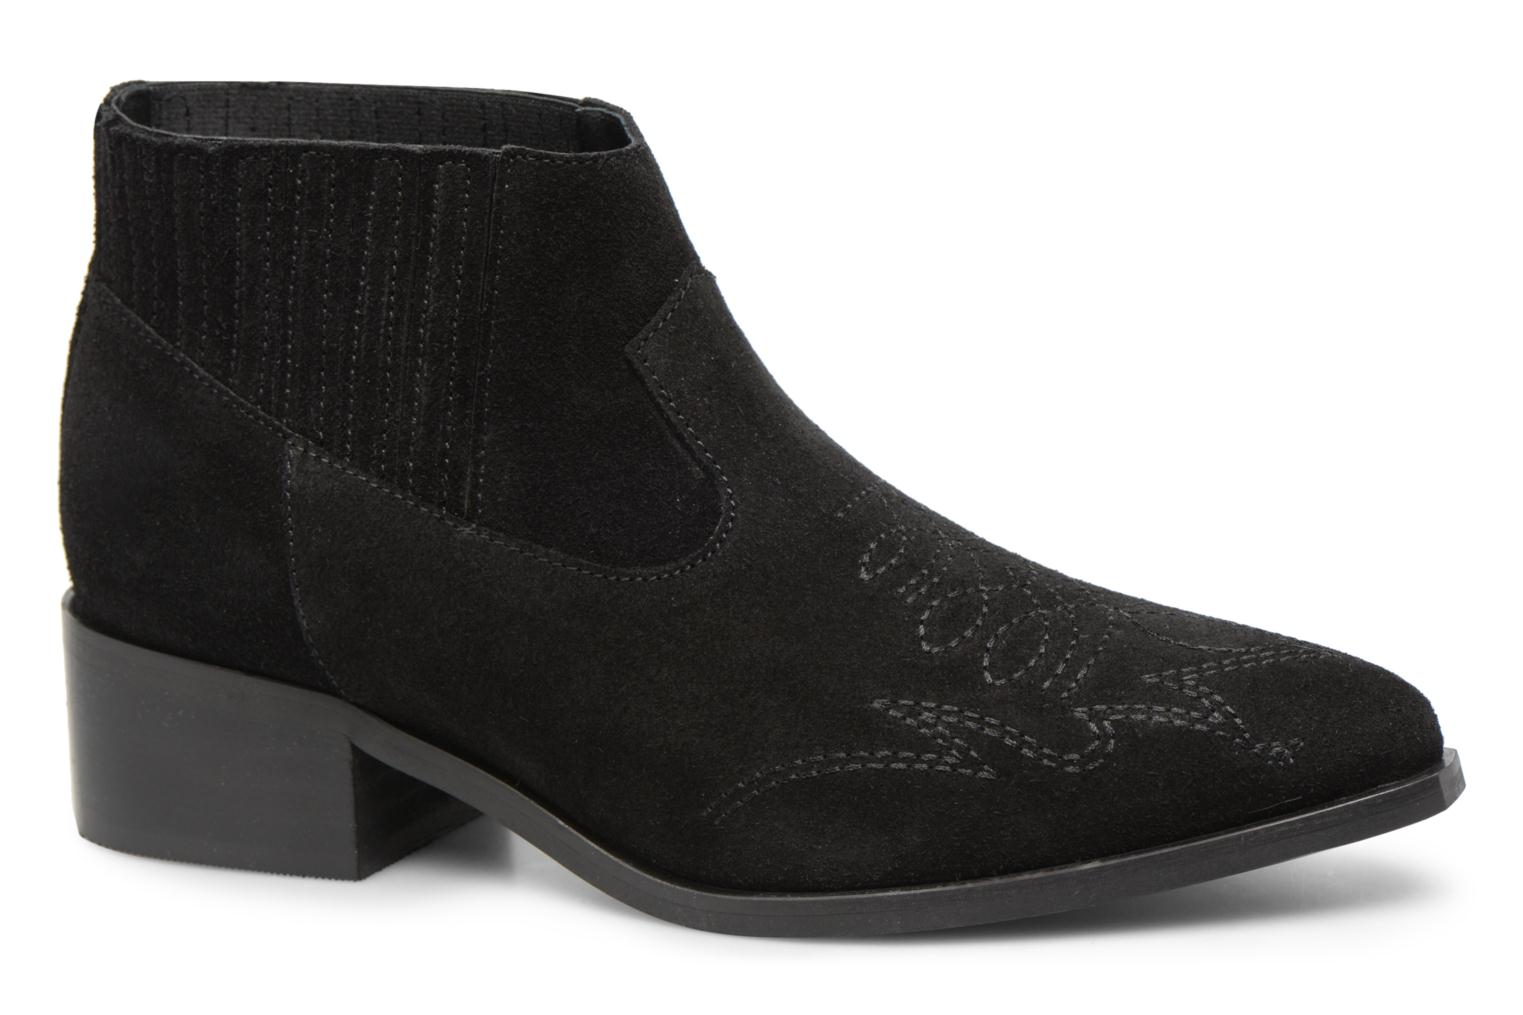 TOBIA LEATHER BOOT par Vero Moda